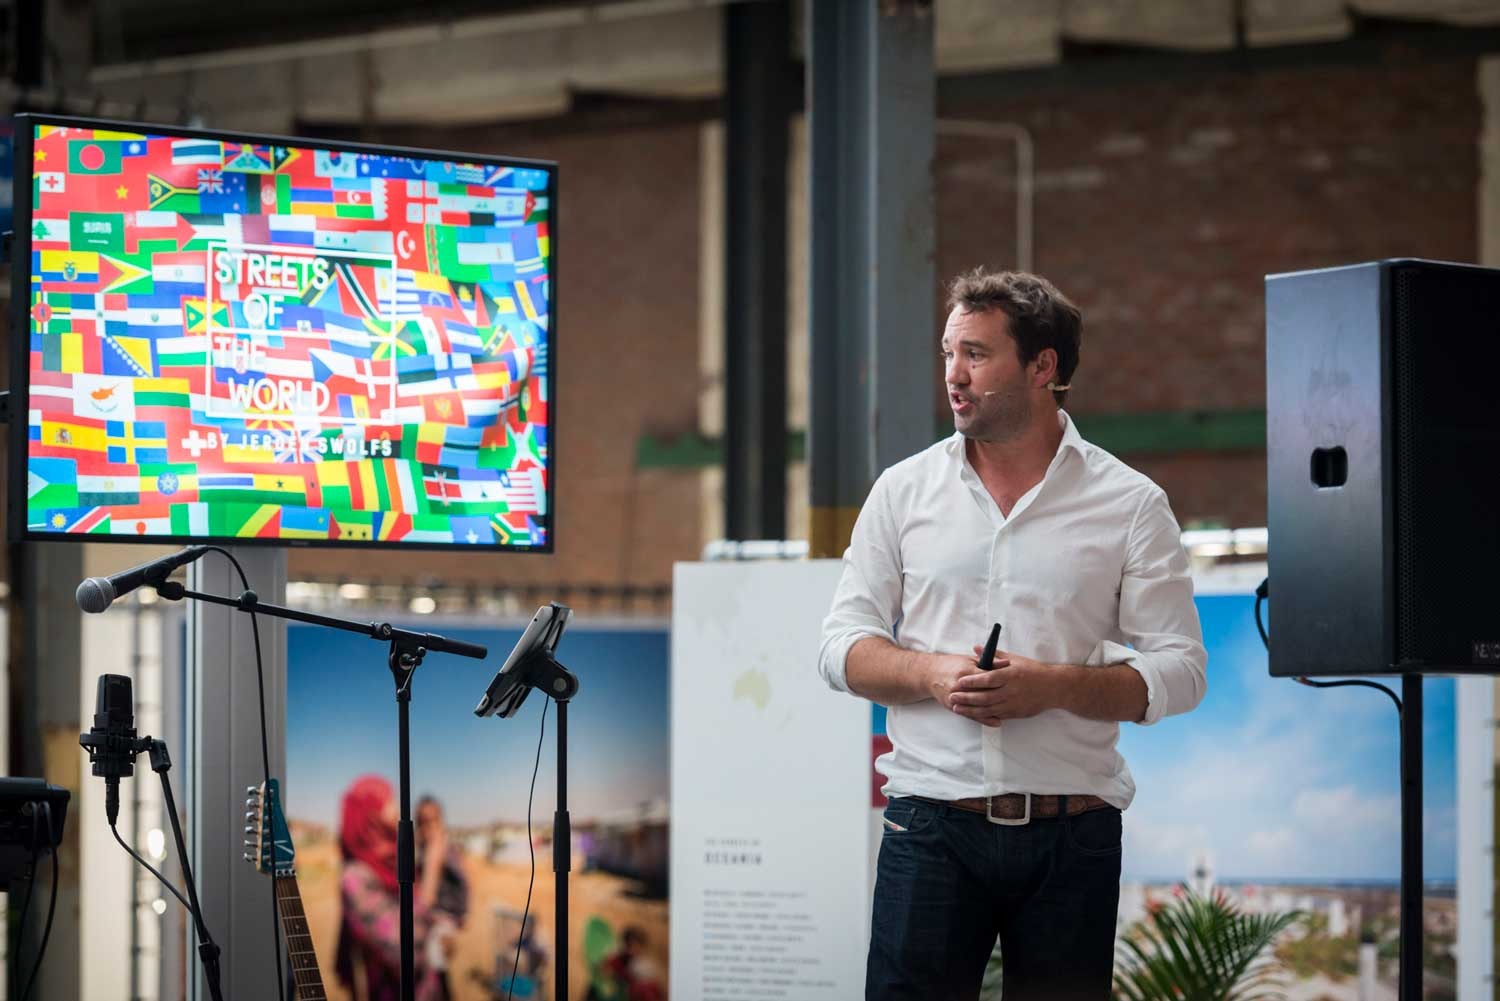 Jeroen Swolfs giving a presentation during B2B event at streets of the world photo museum